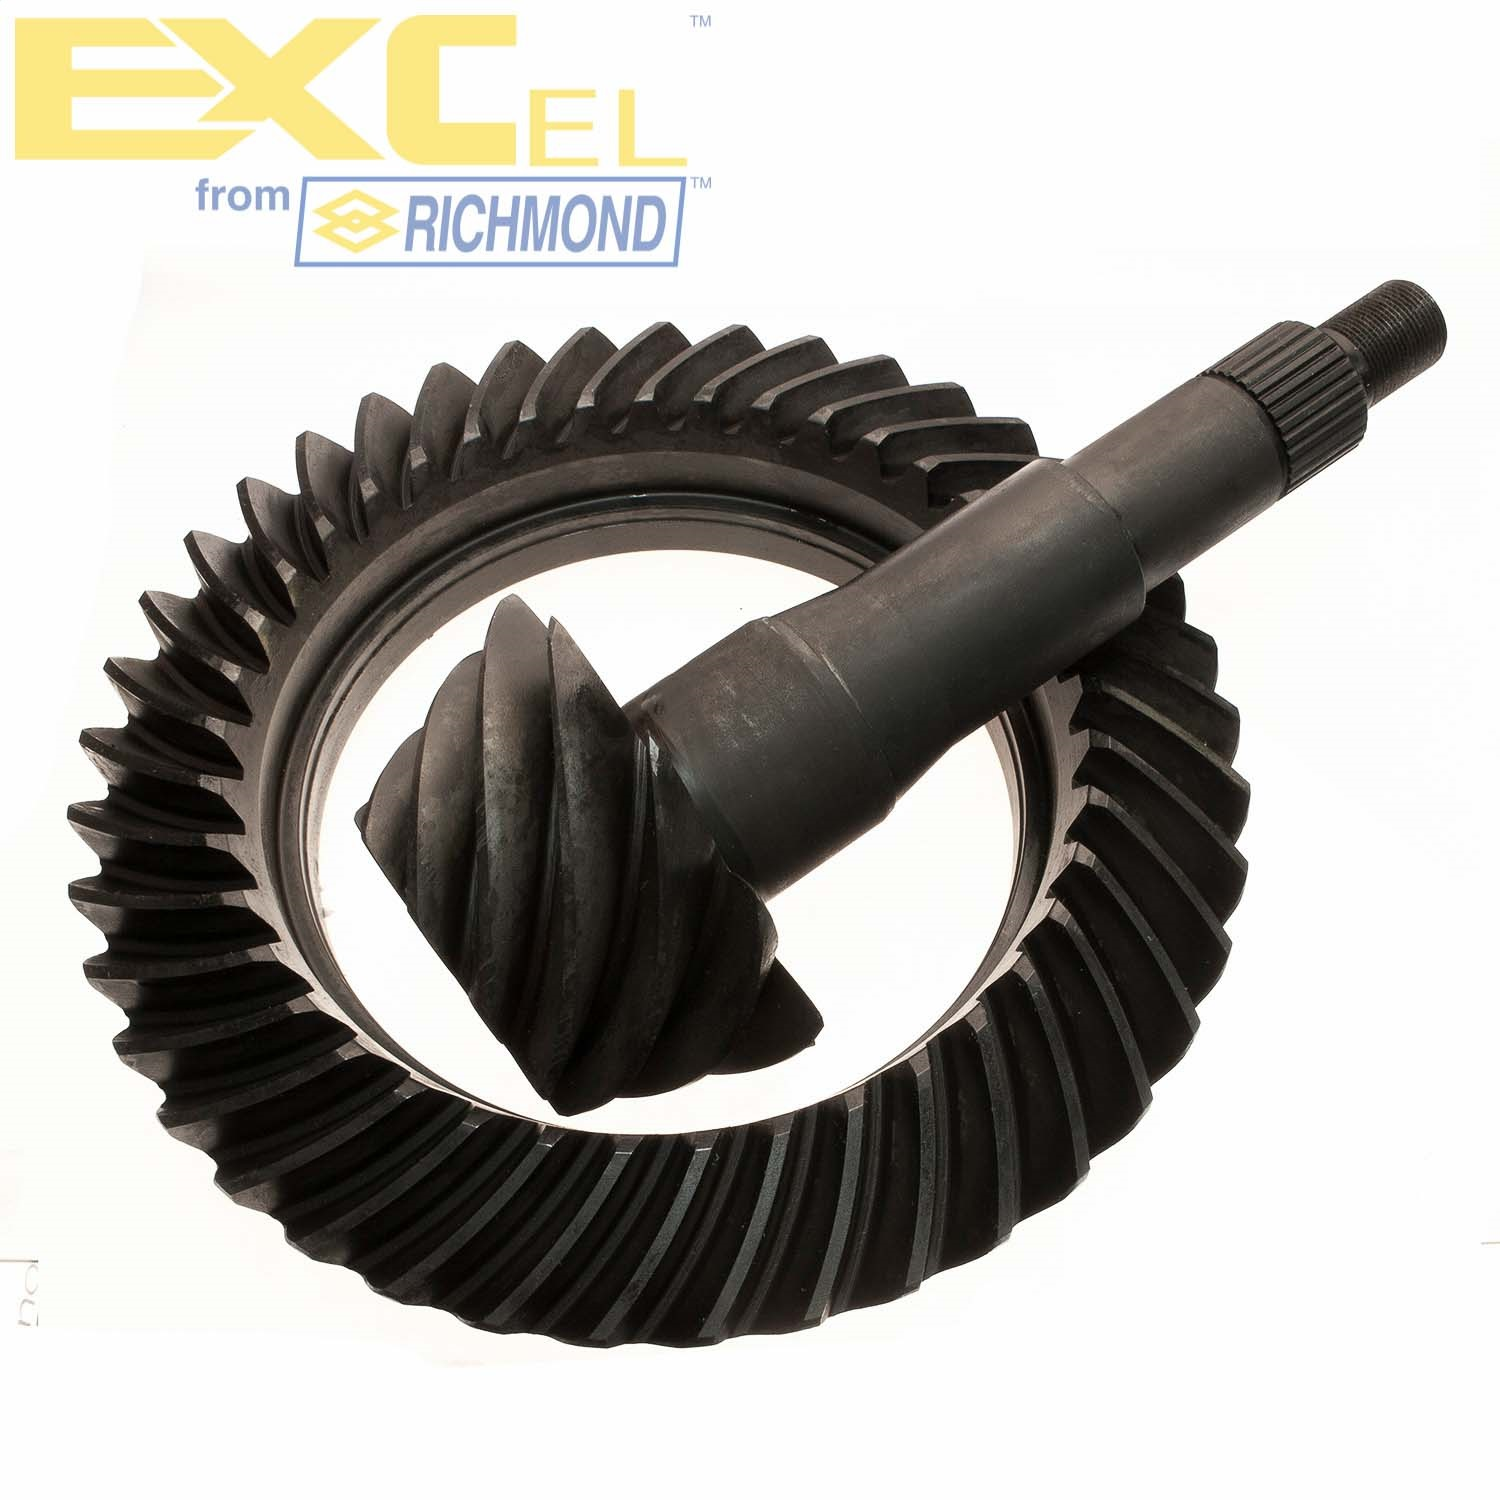 EXCEL from Richmond F10456 Differential Ring And Pinion